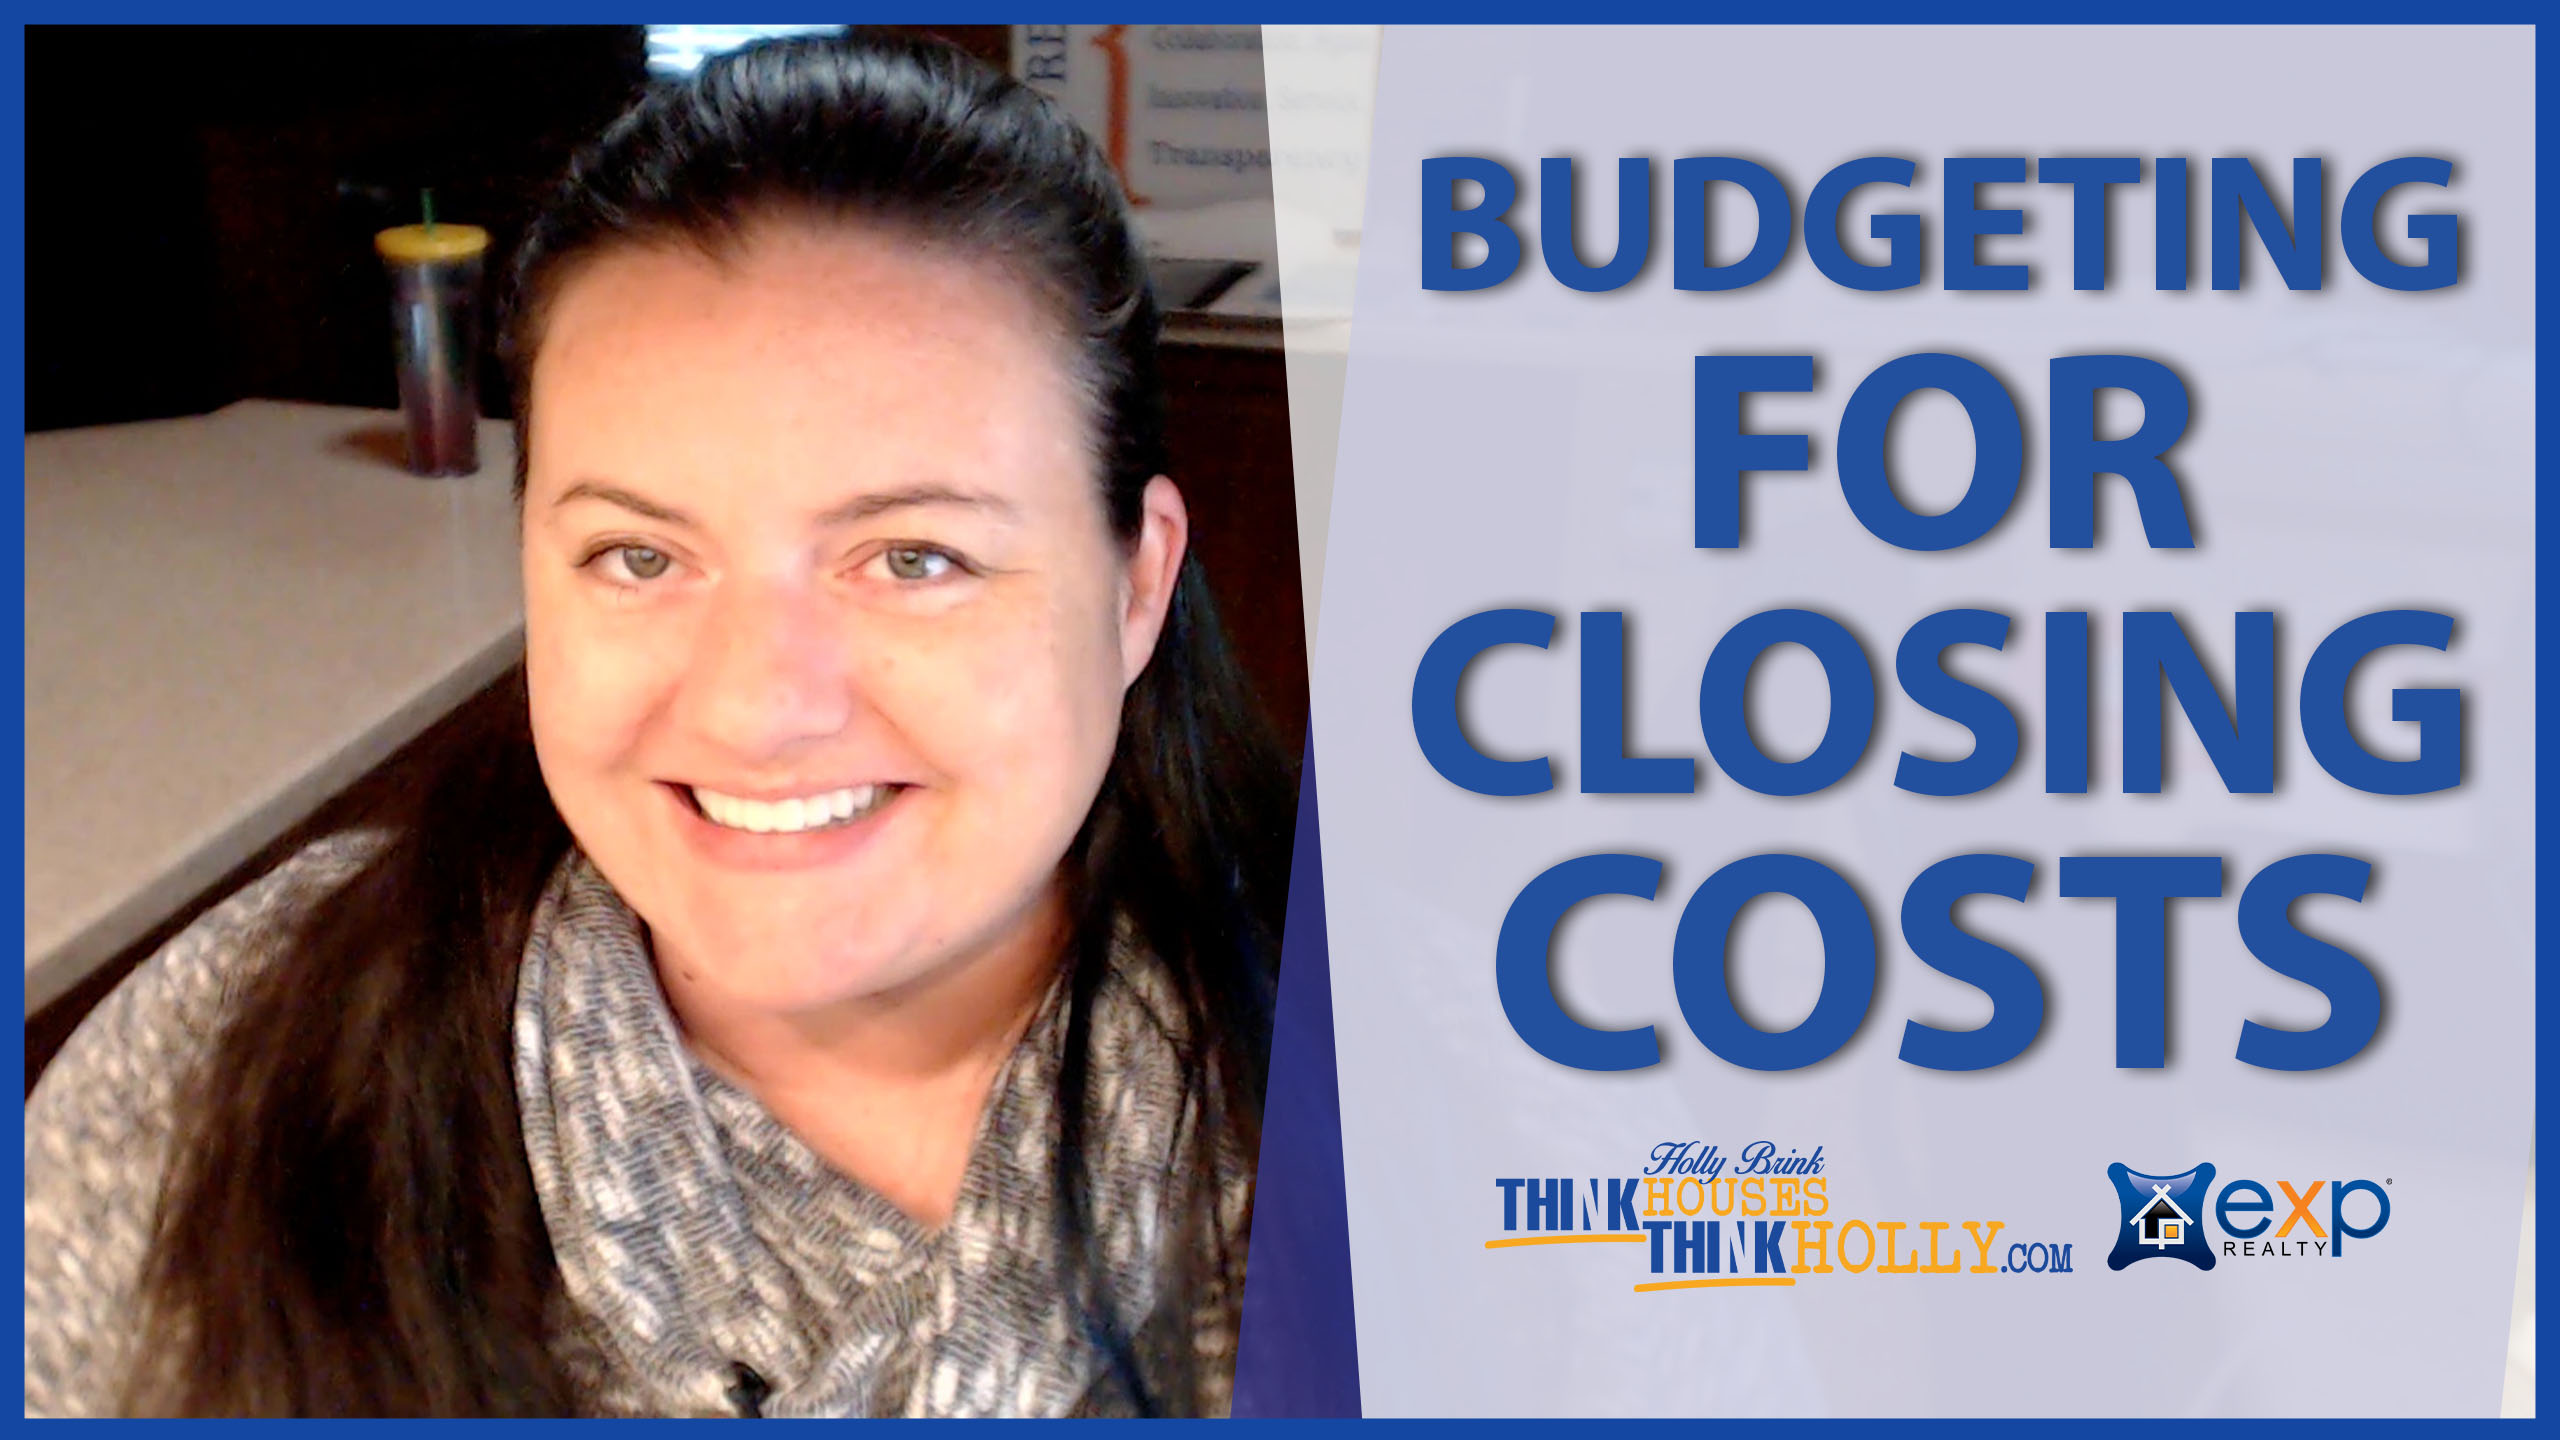 Q: What Closing Costs Should Buyers Budget for?